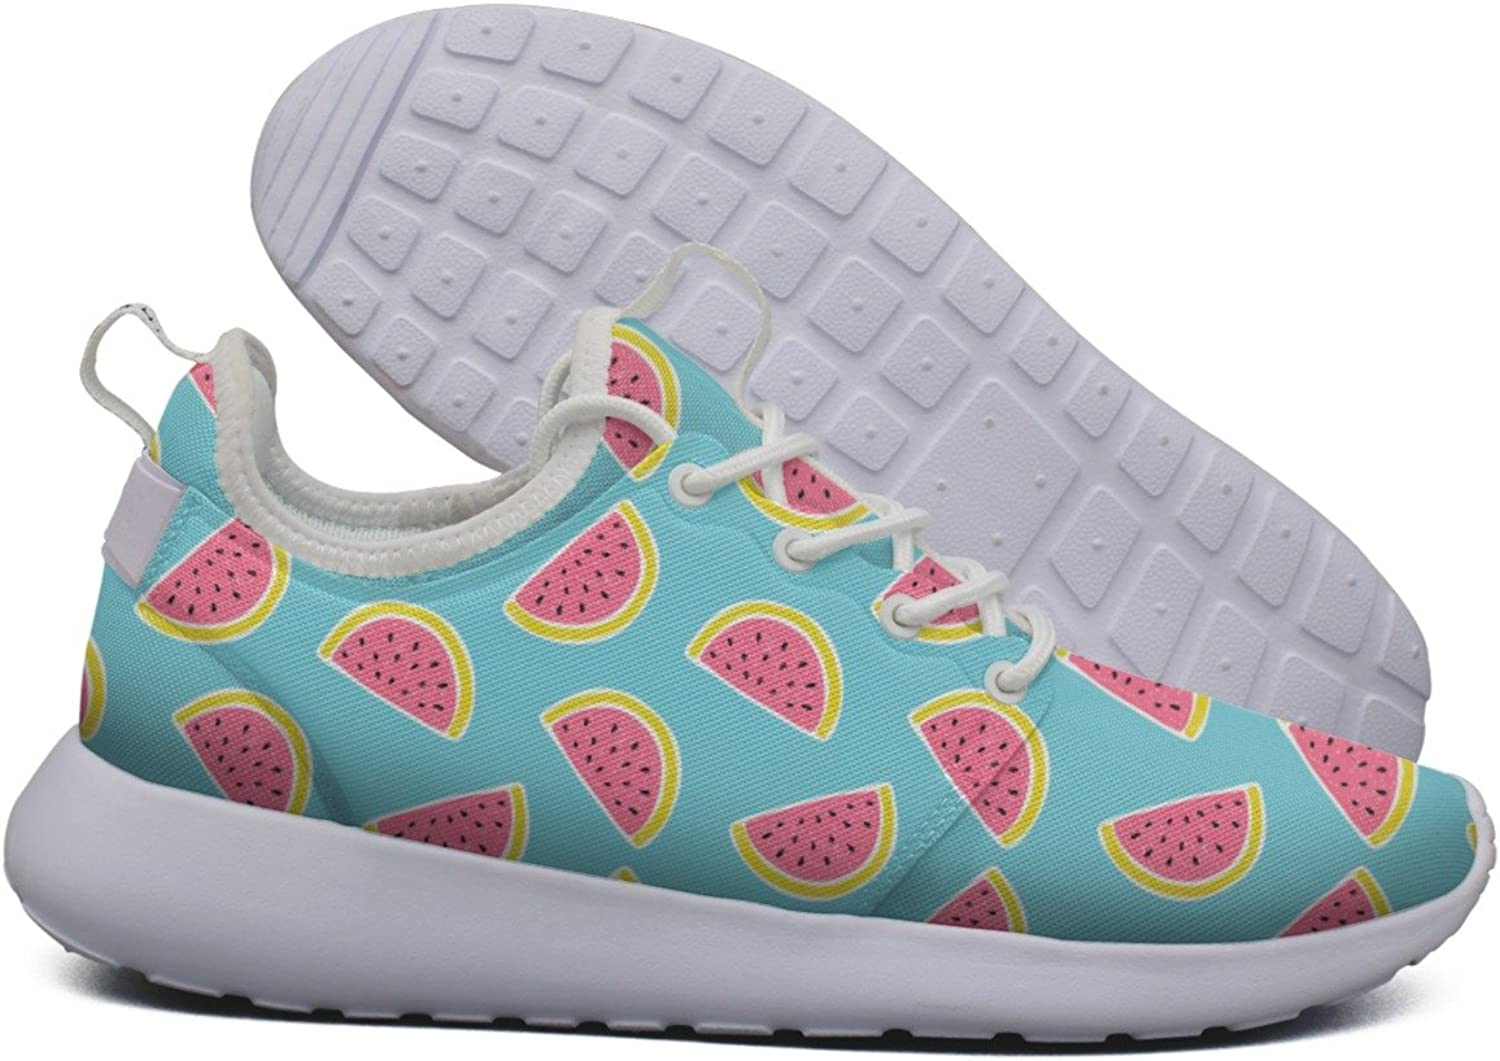 ERSER Watermelon Vine Athletic Running shoes Women